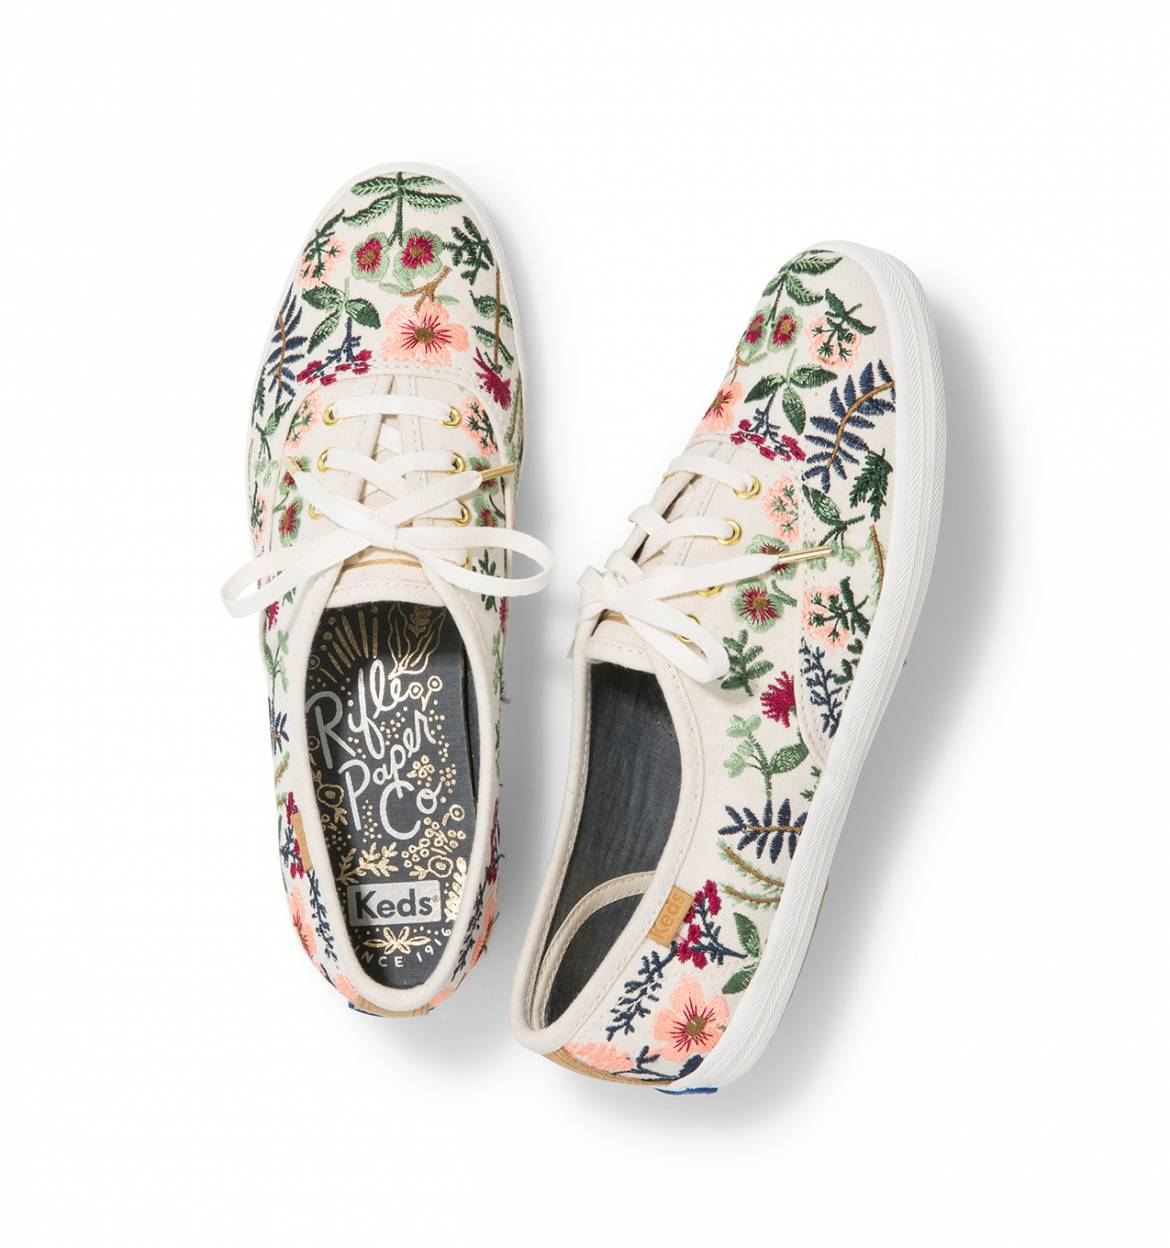 embroidered herb garden keds rifle paper co.jpg